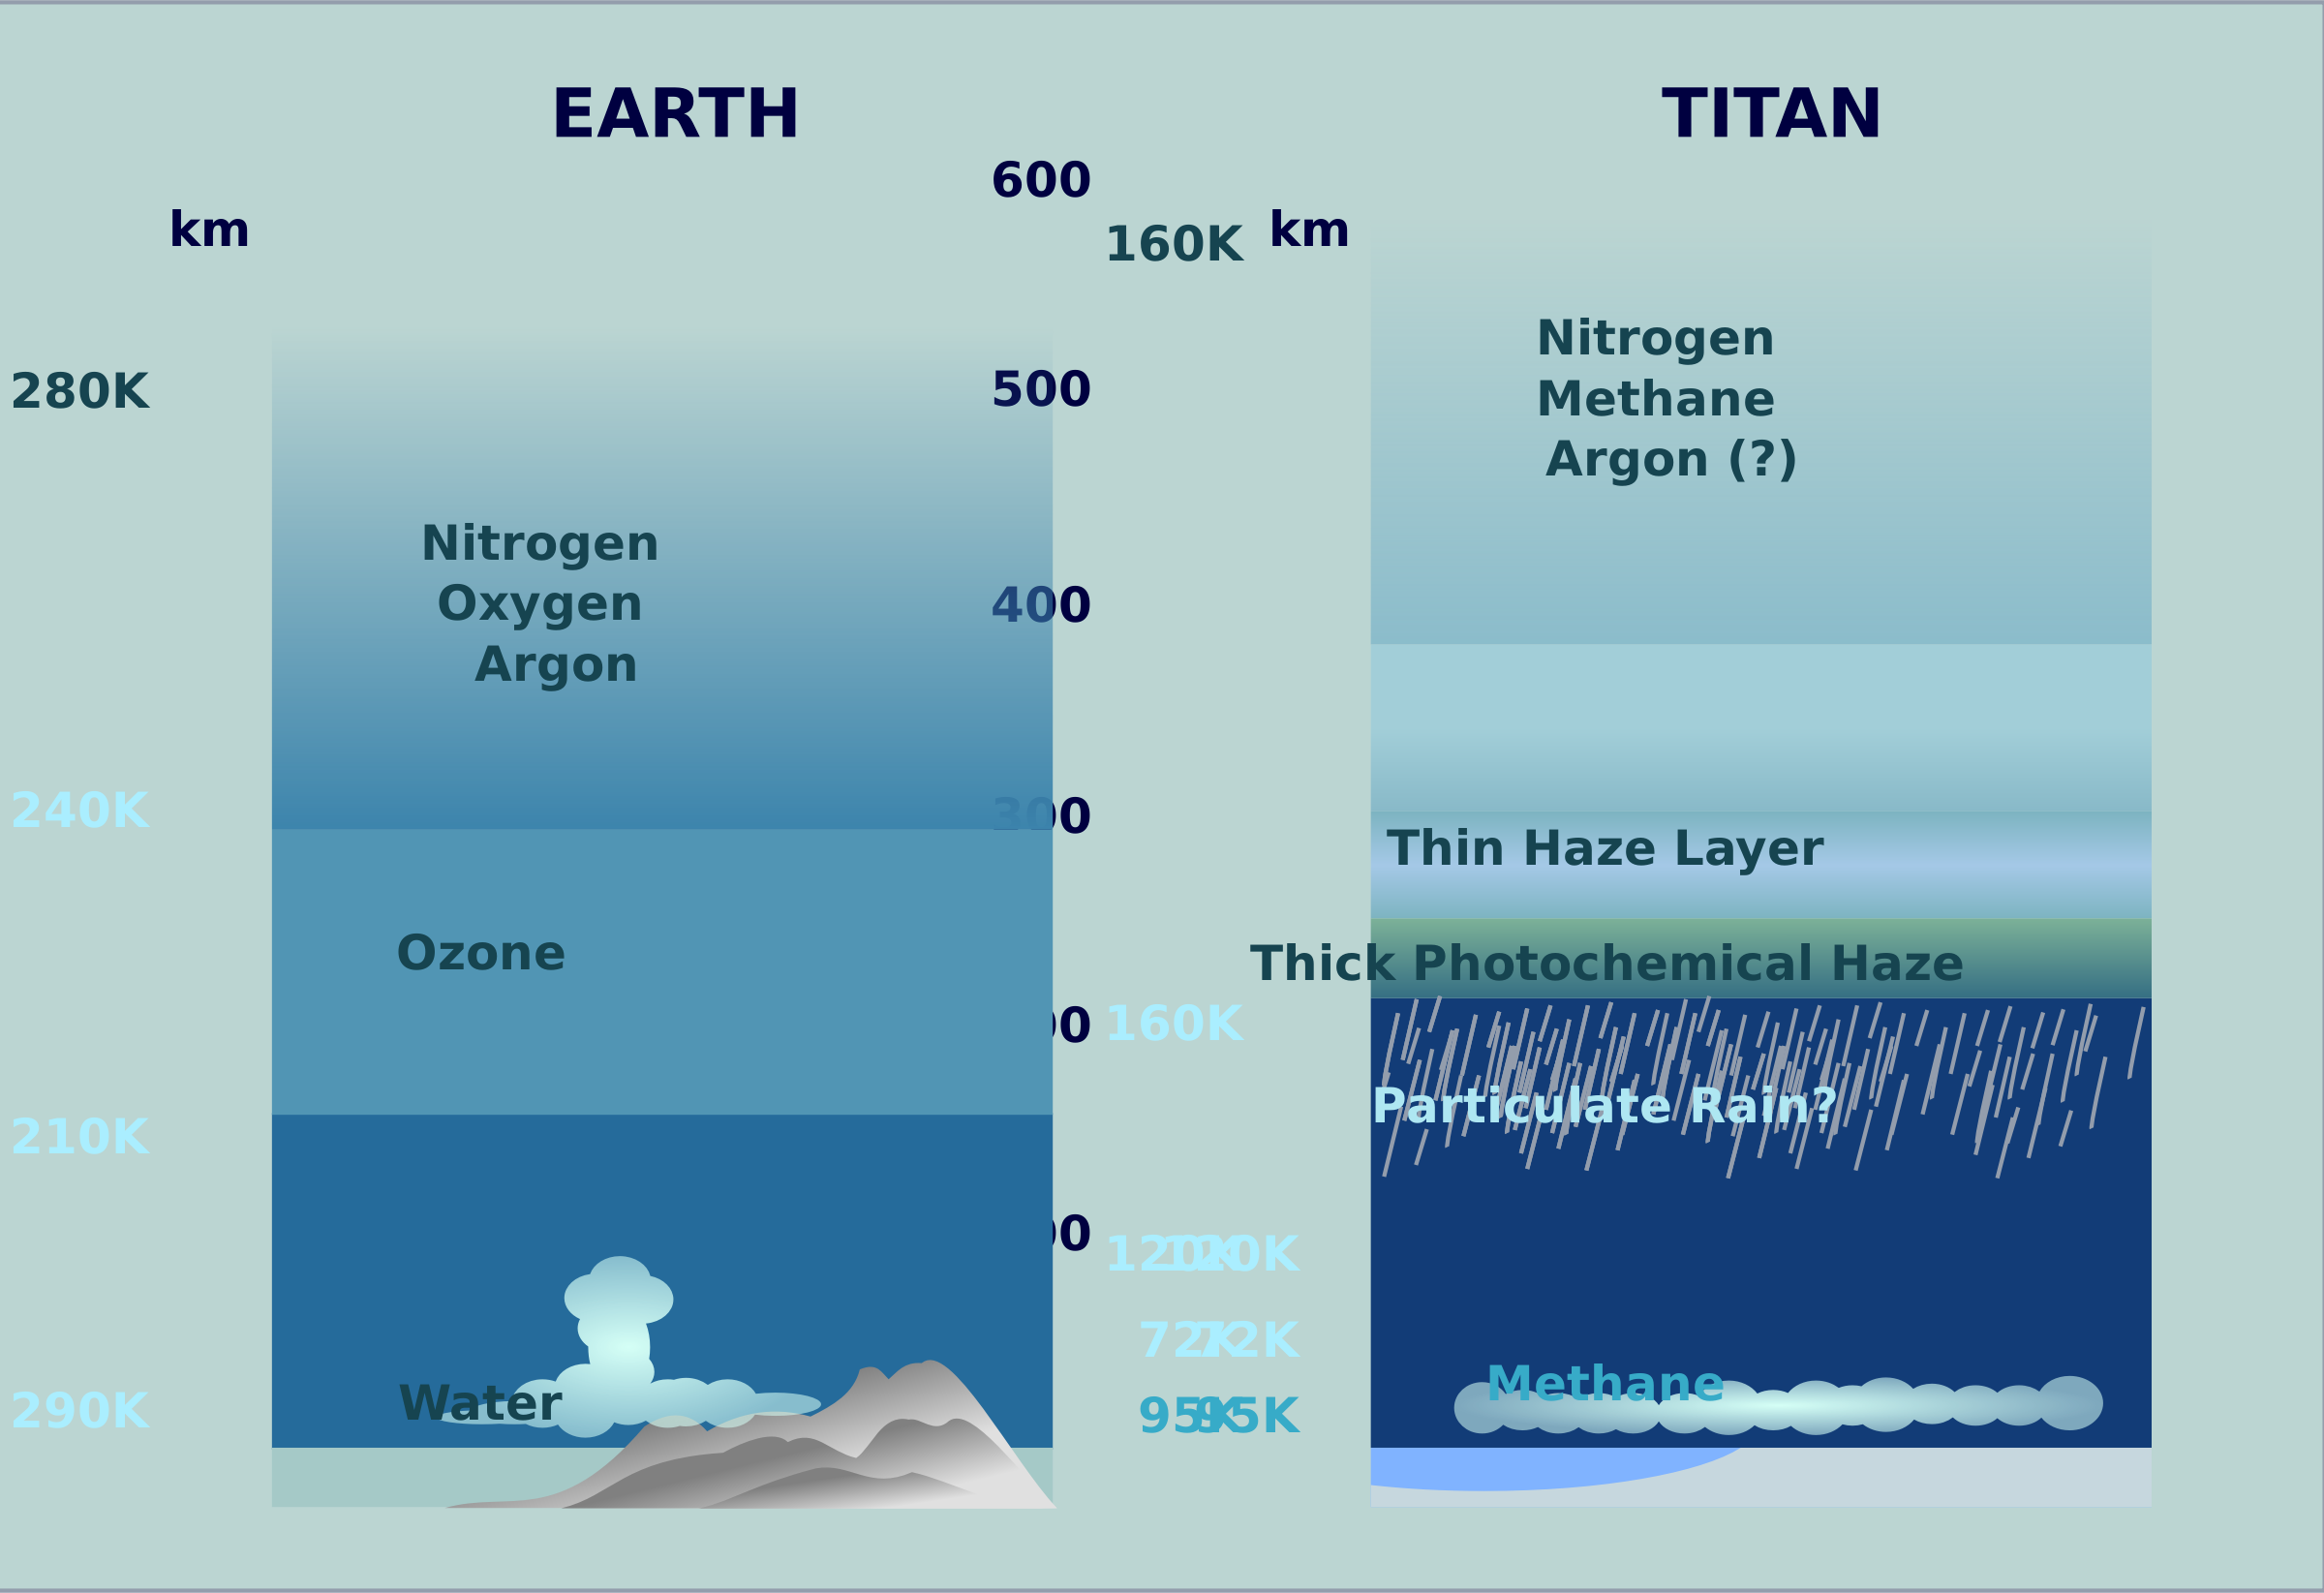 Atmospheric Comparison Titan Earth by NASA